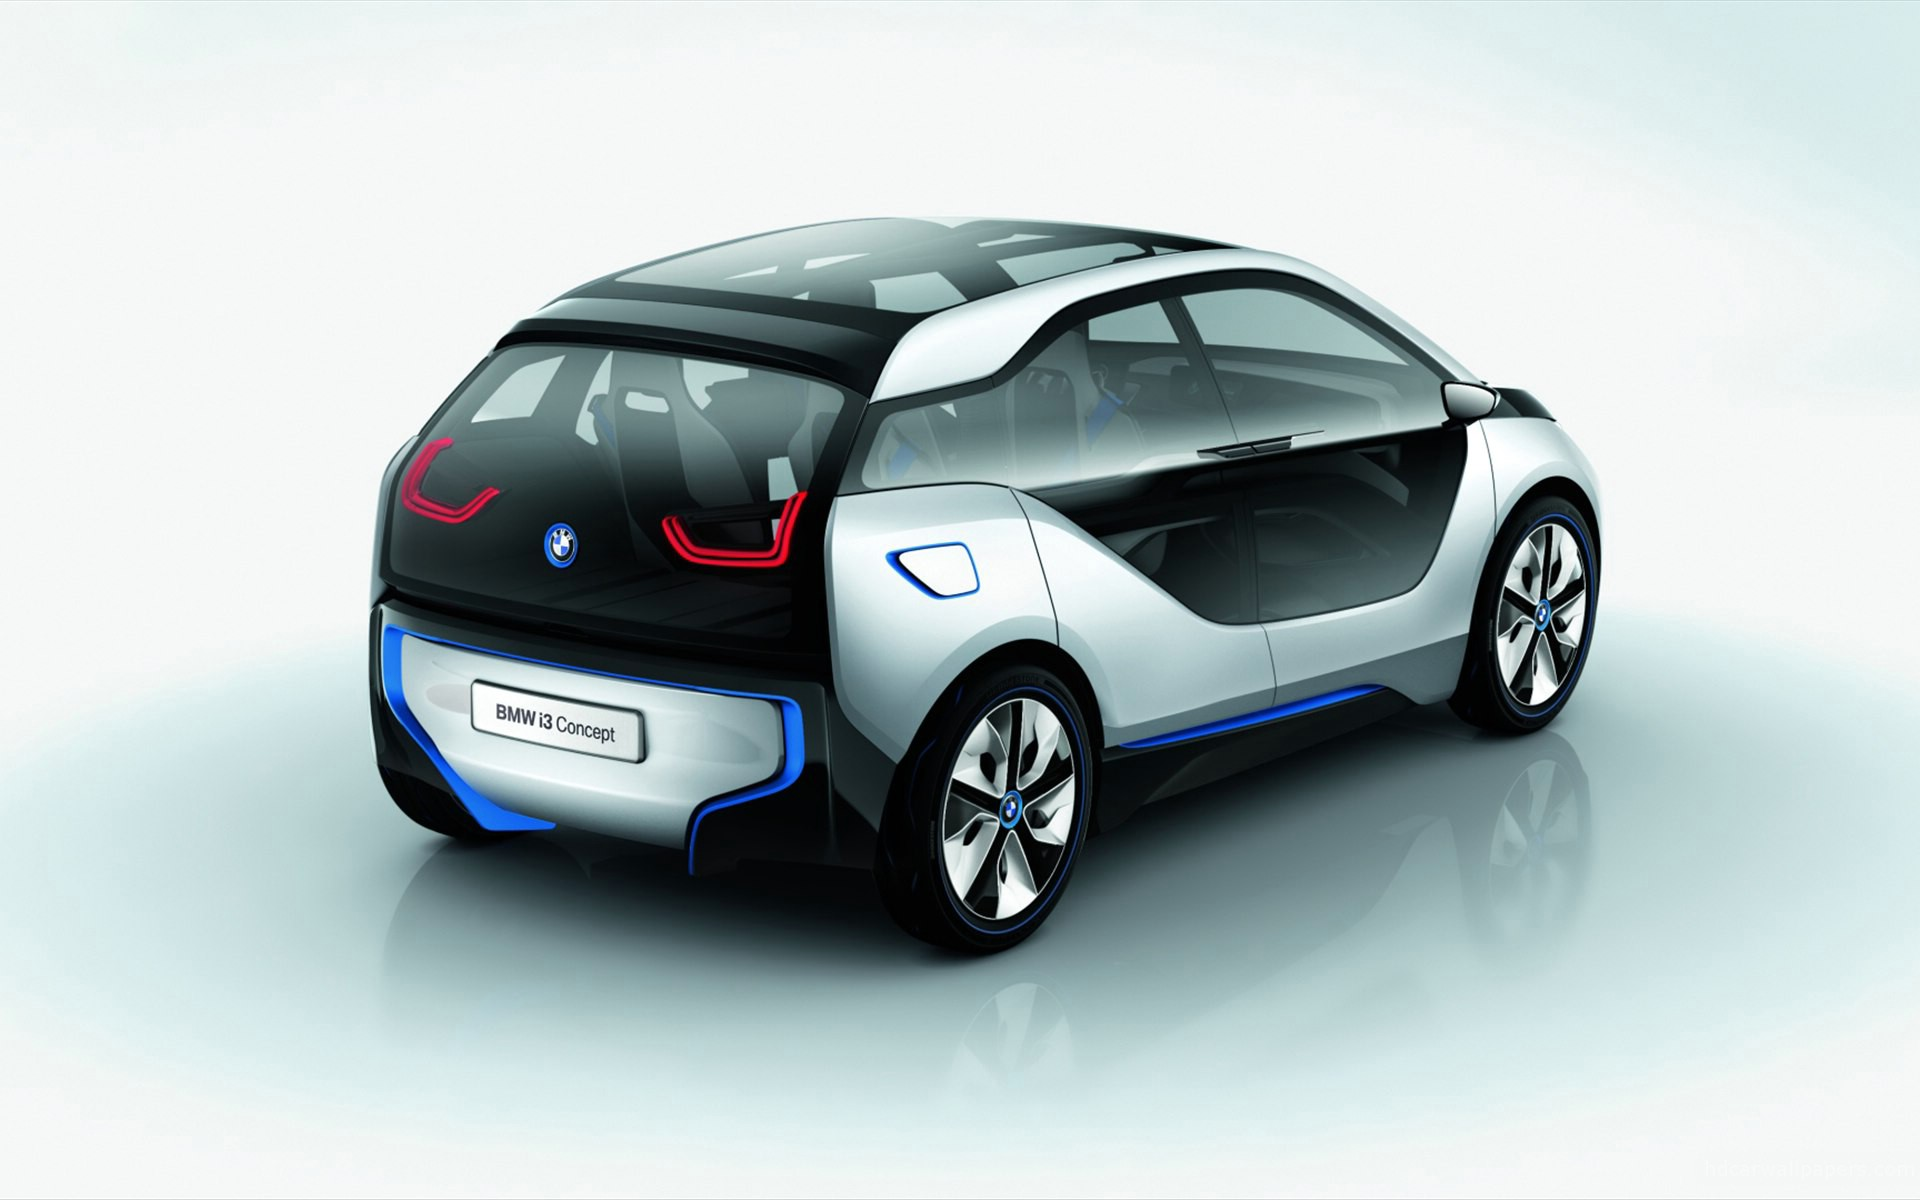 1920x1200 - BMW i3 Concept Wallpapers 32